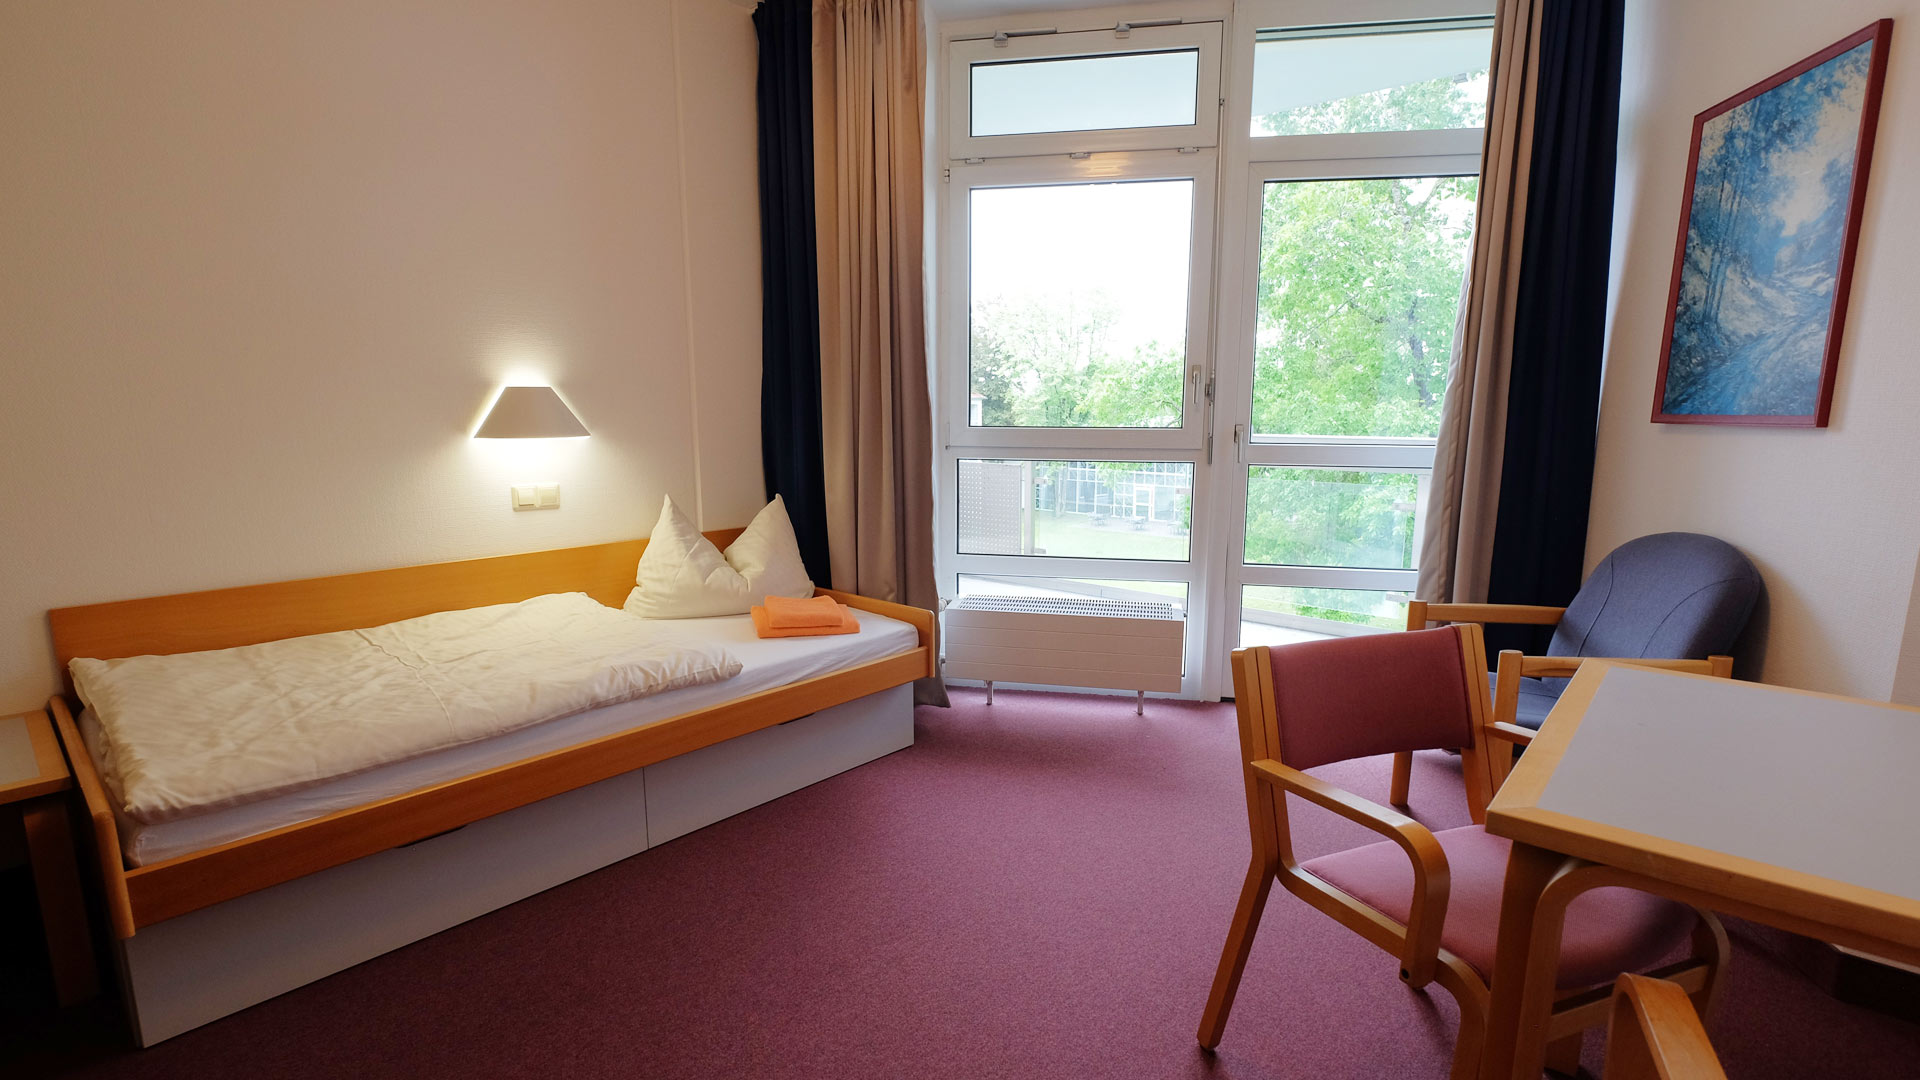 Bad_Schussenried-Two_bed_room_in_building_4-4025-16x9_72dpi